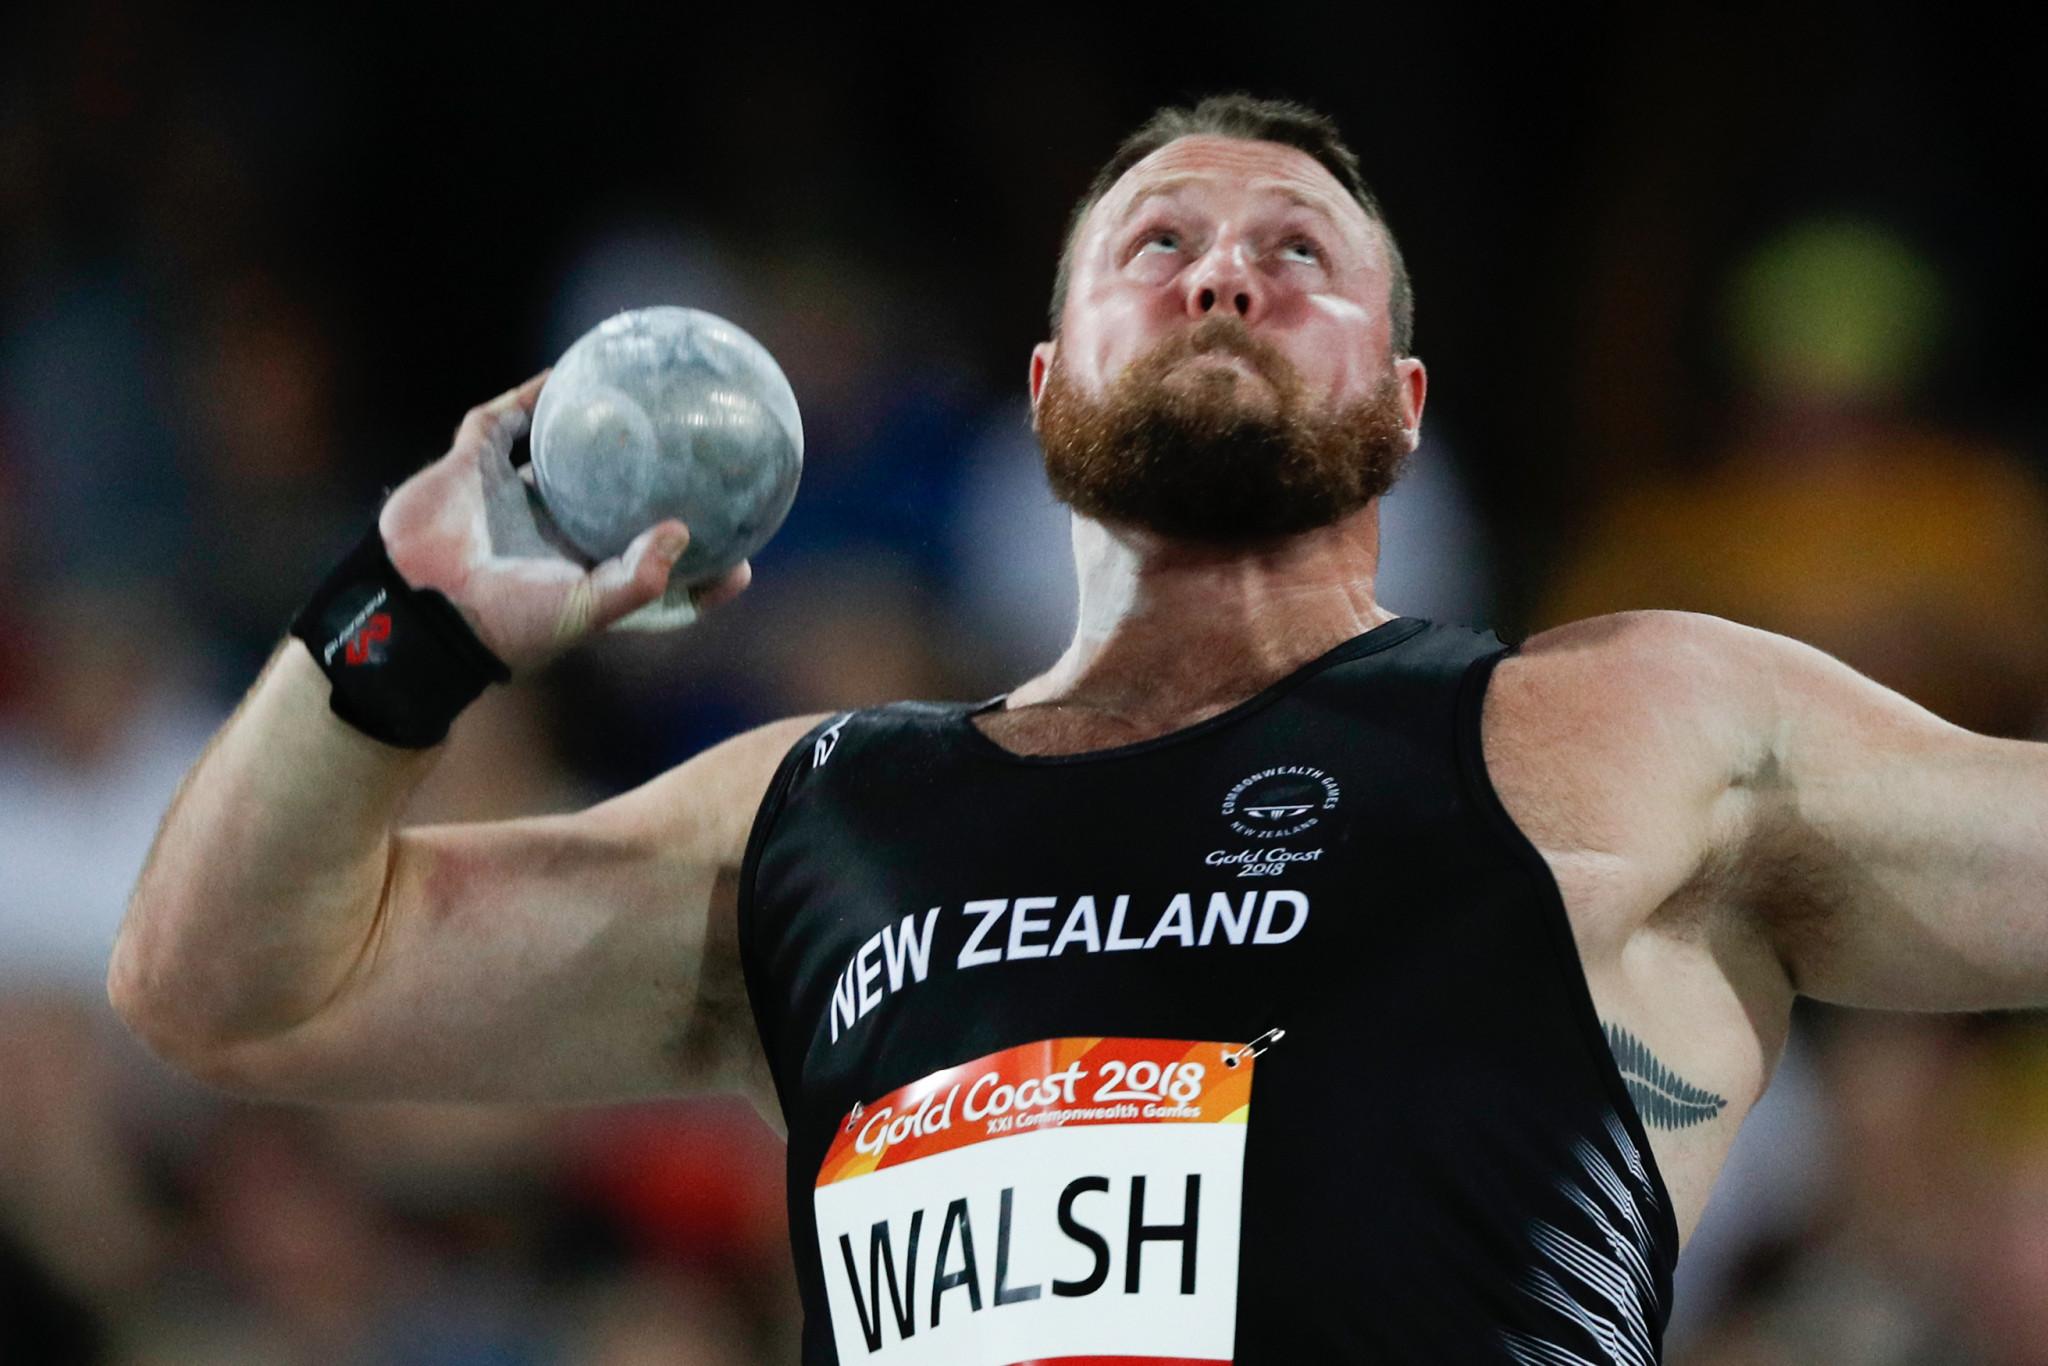 New Zealand's Tomas Walsh won the men's shot put ©Getty Images